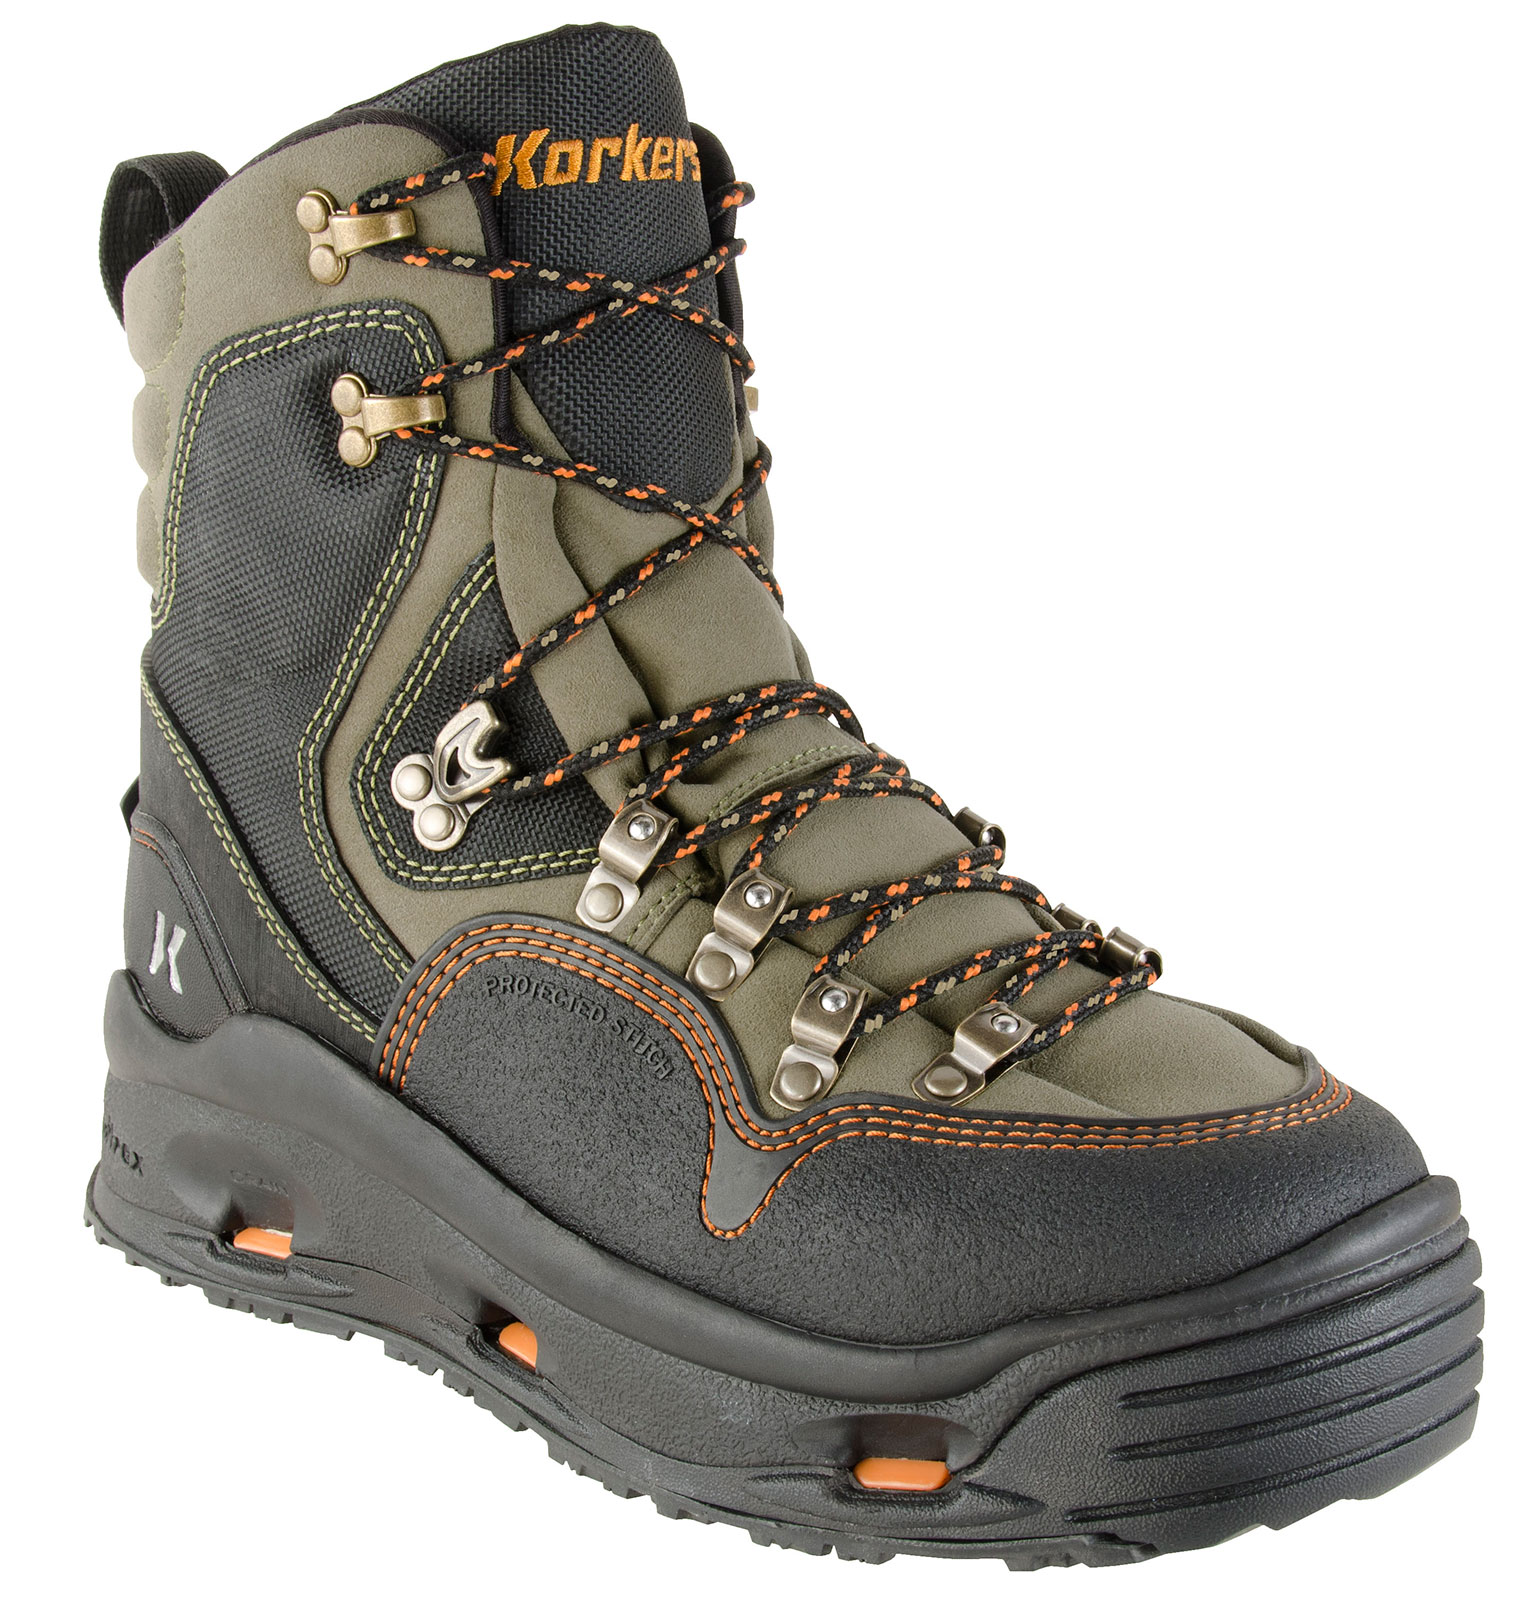 Korkers k 5 bomber fly fishing wading boot with felt and for Fly fishing wading boots